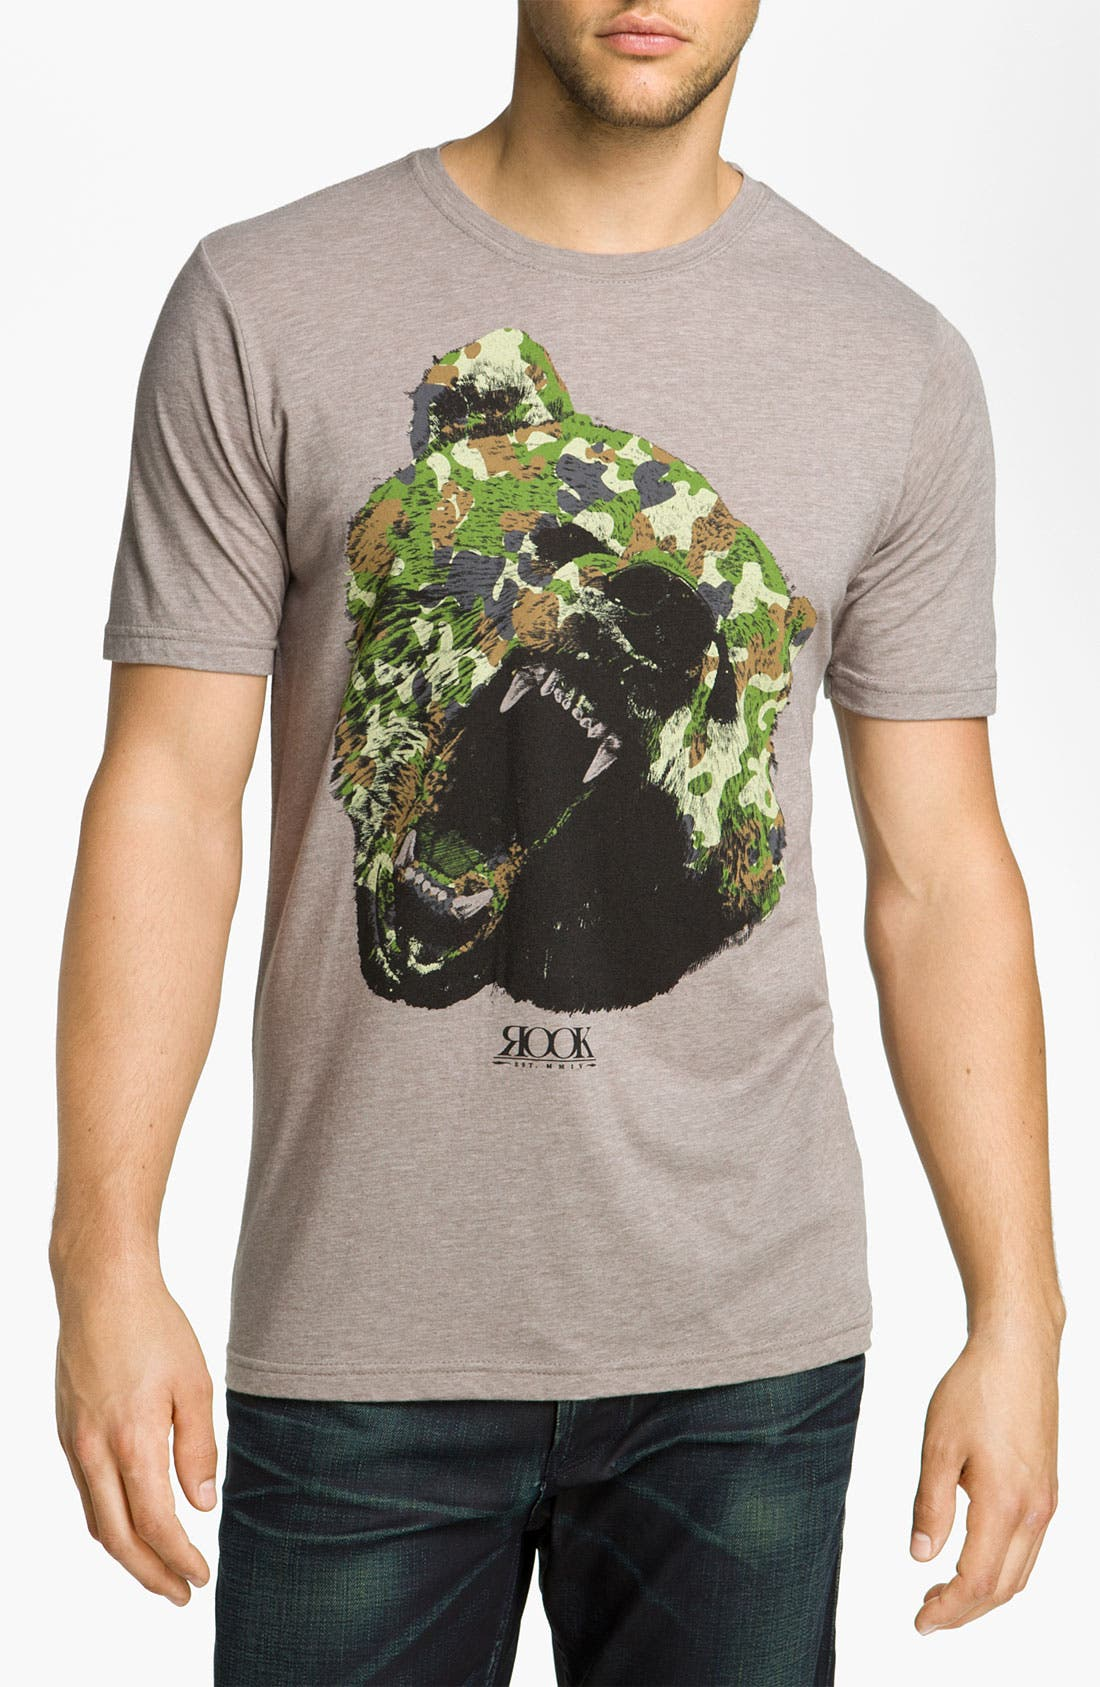 Main Image - Rook 'Camo Bear' Graphic T-Shirt